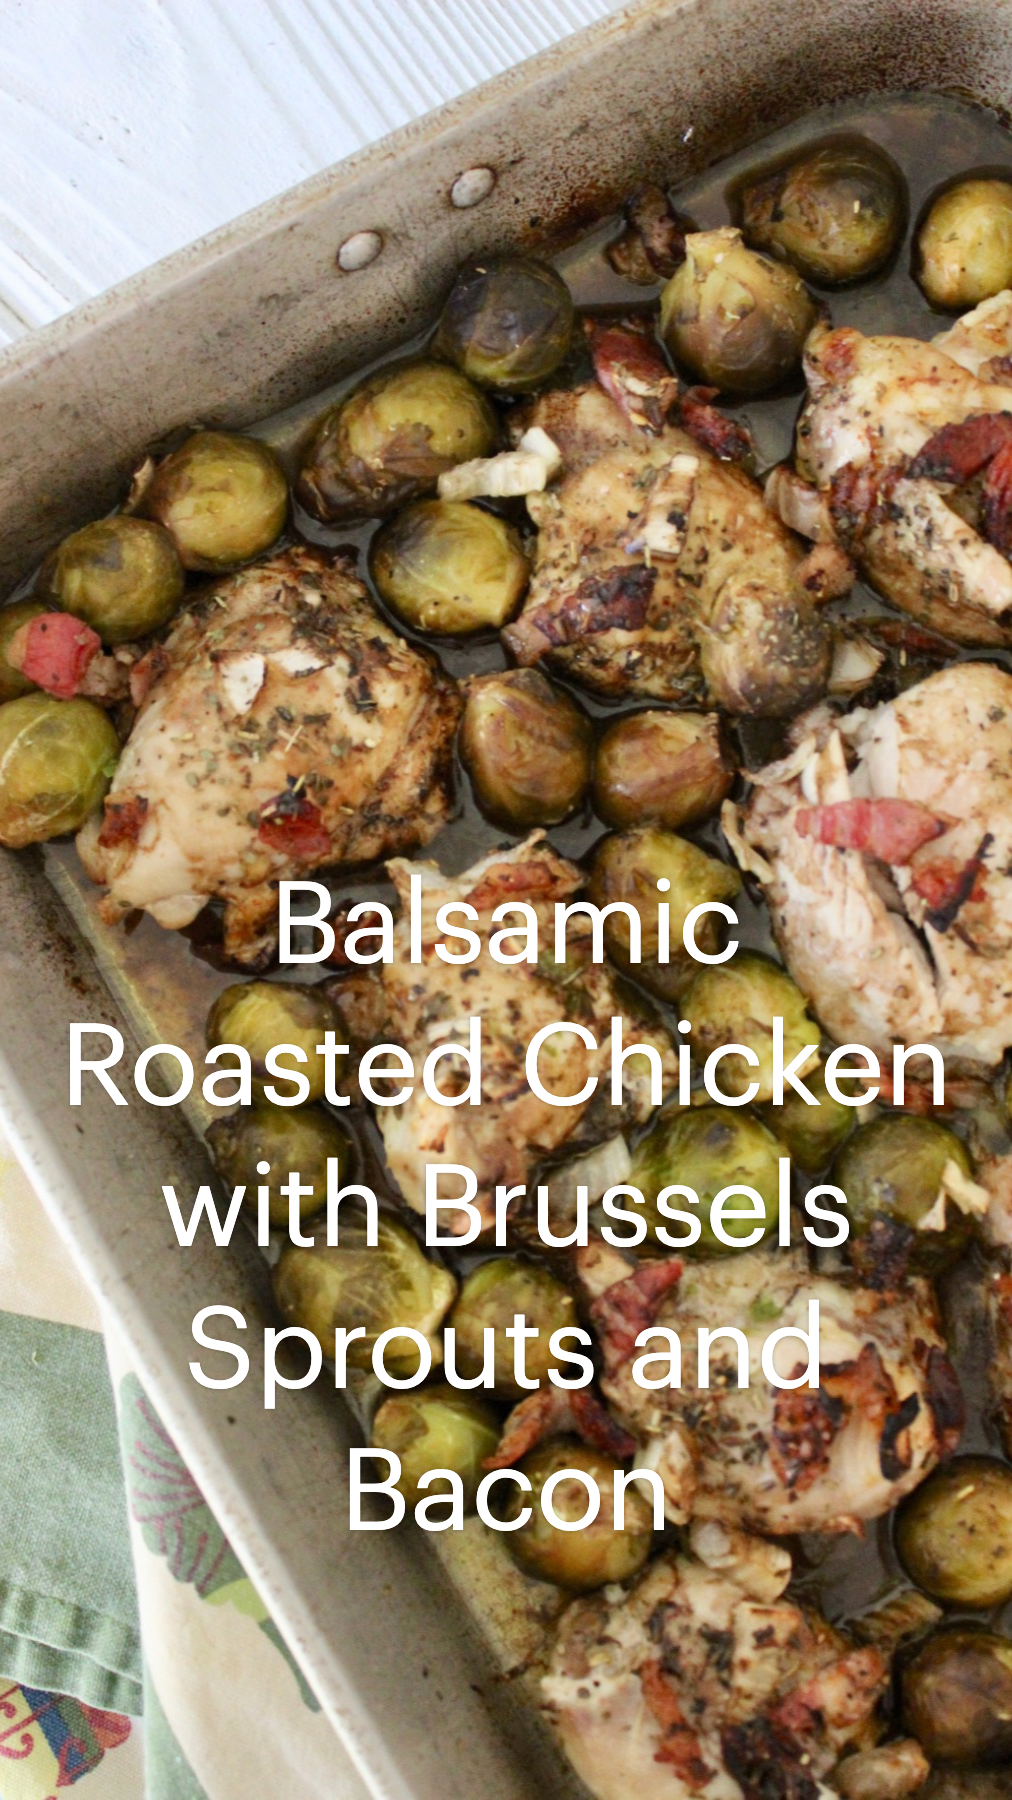 Balsamic Roasted Chicken with Brussels Sprouts and Bacon